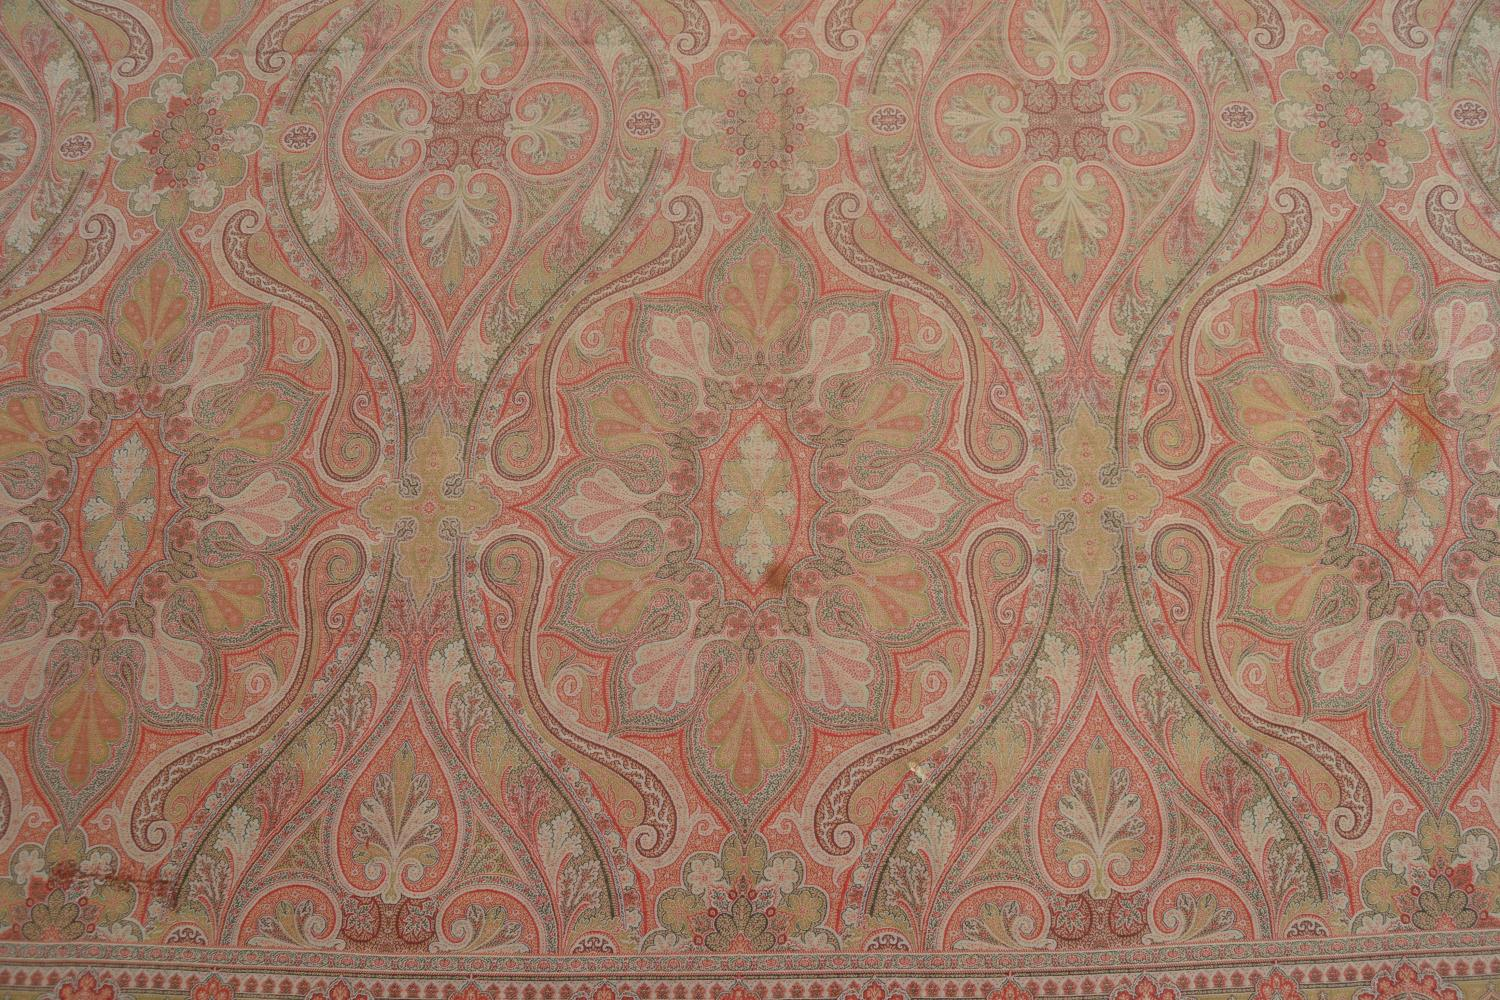 Lot 26 - Late 19th or early 20th Century Paisley shawl woven in shades of predominantly red, black, green and